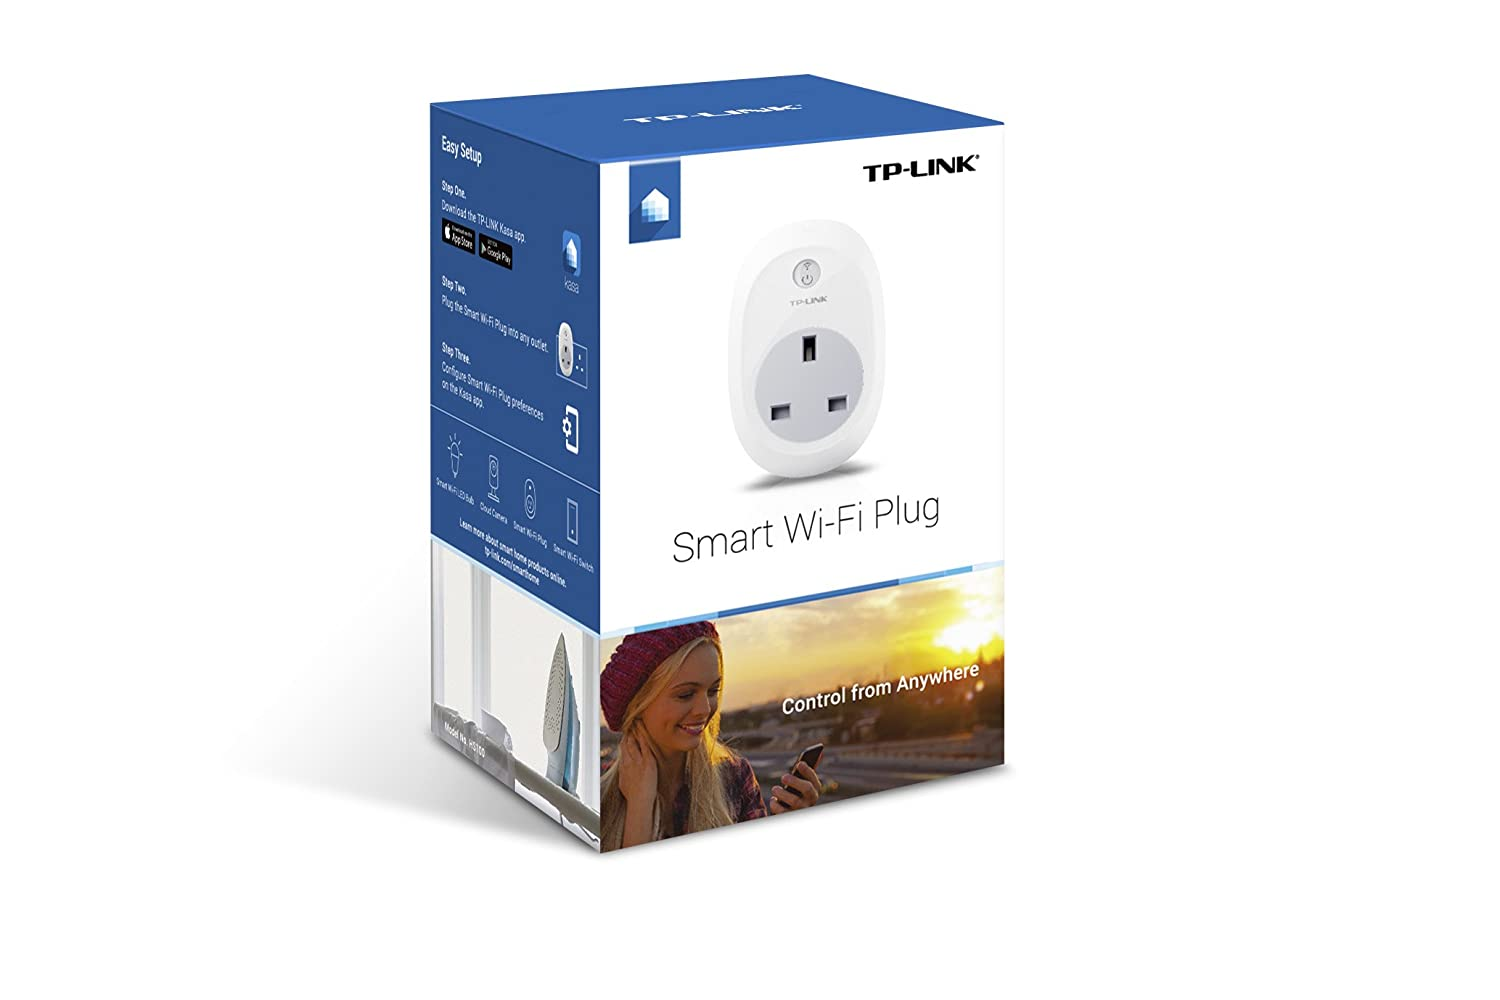 TP-Link Smart Wi-Fi Plug can be used by disabled children to switch any device on or off using voice control